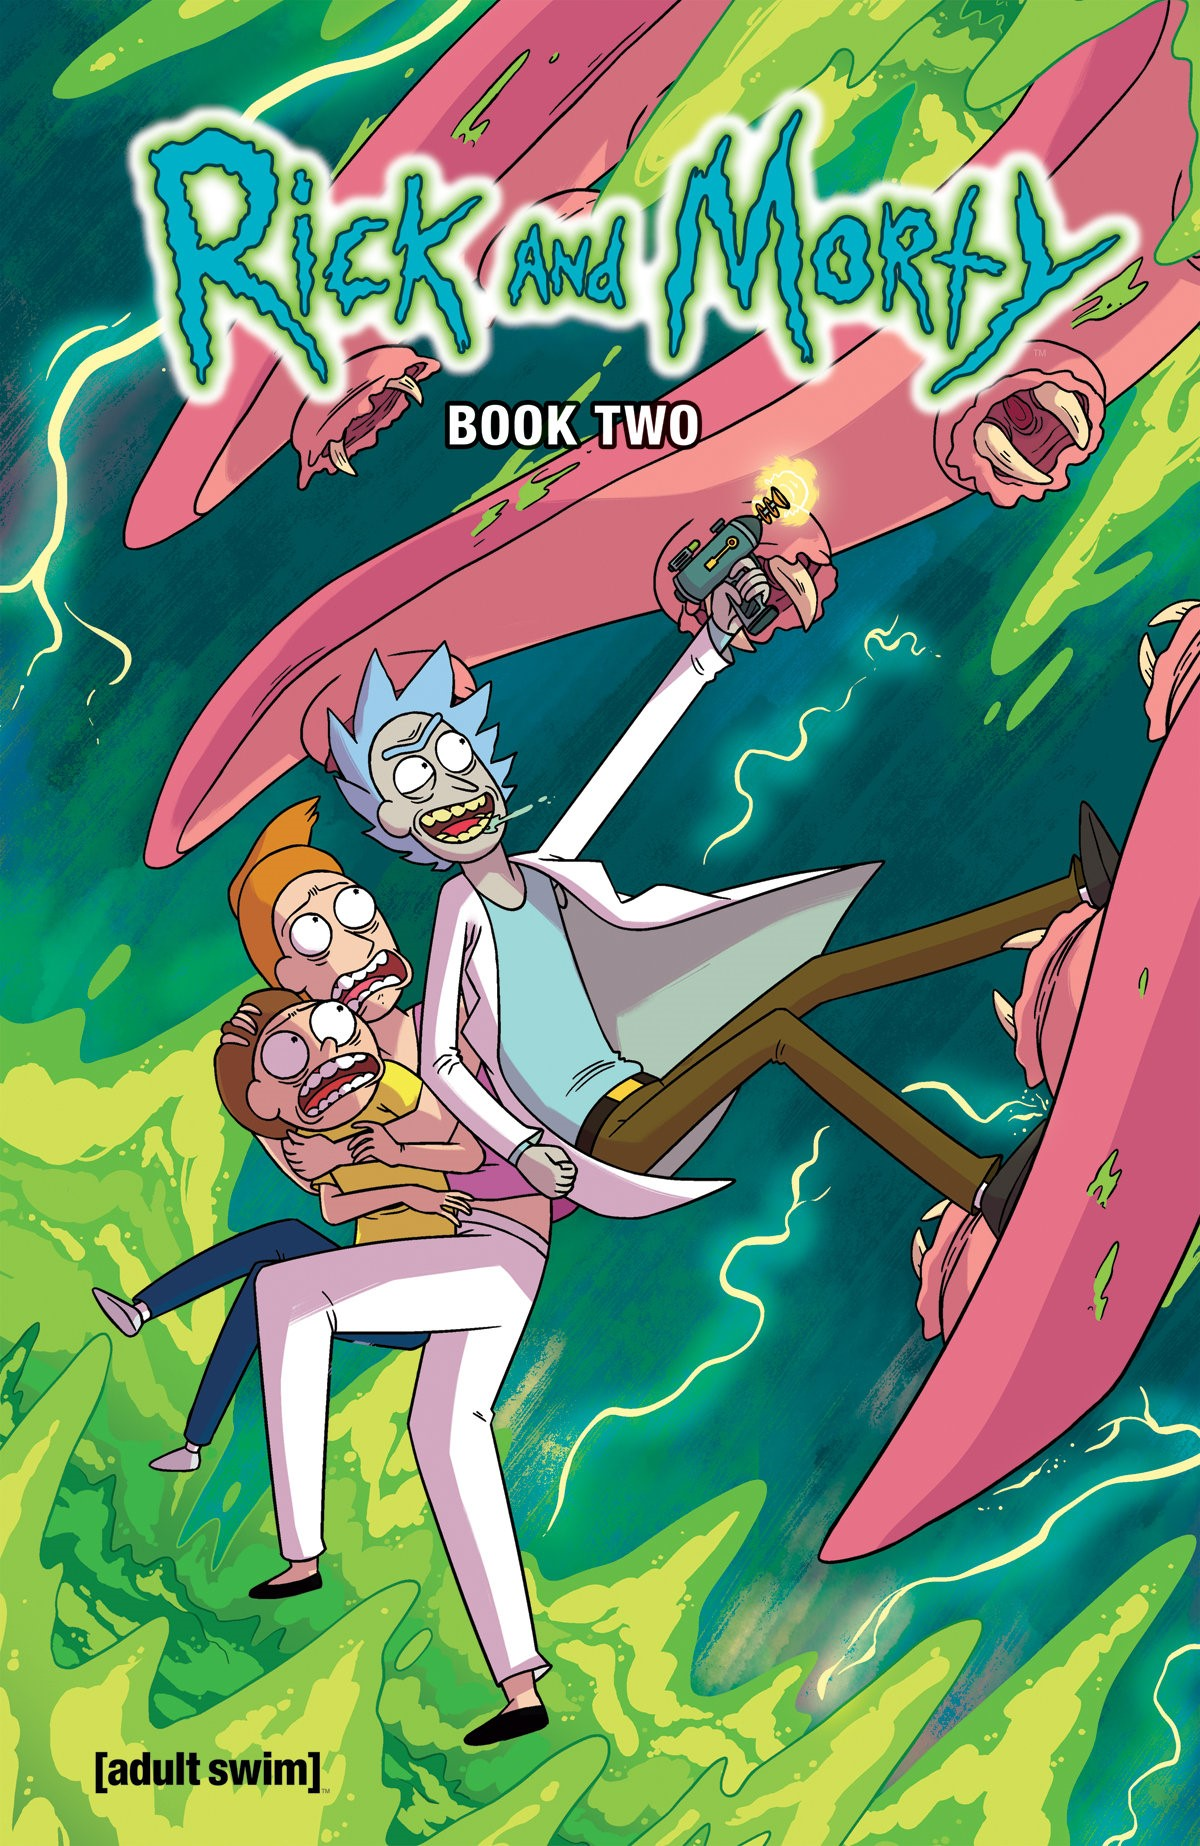 Rick and Morty™ Hardcover Book Two Collects the issues #11-20! Cover by CJ Cannon and Katy Farina